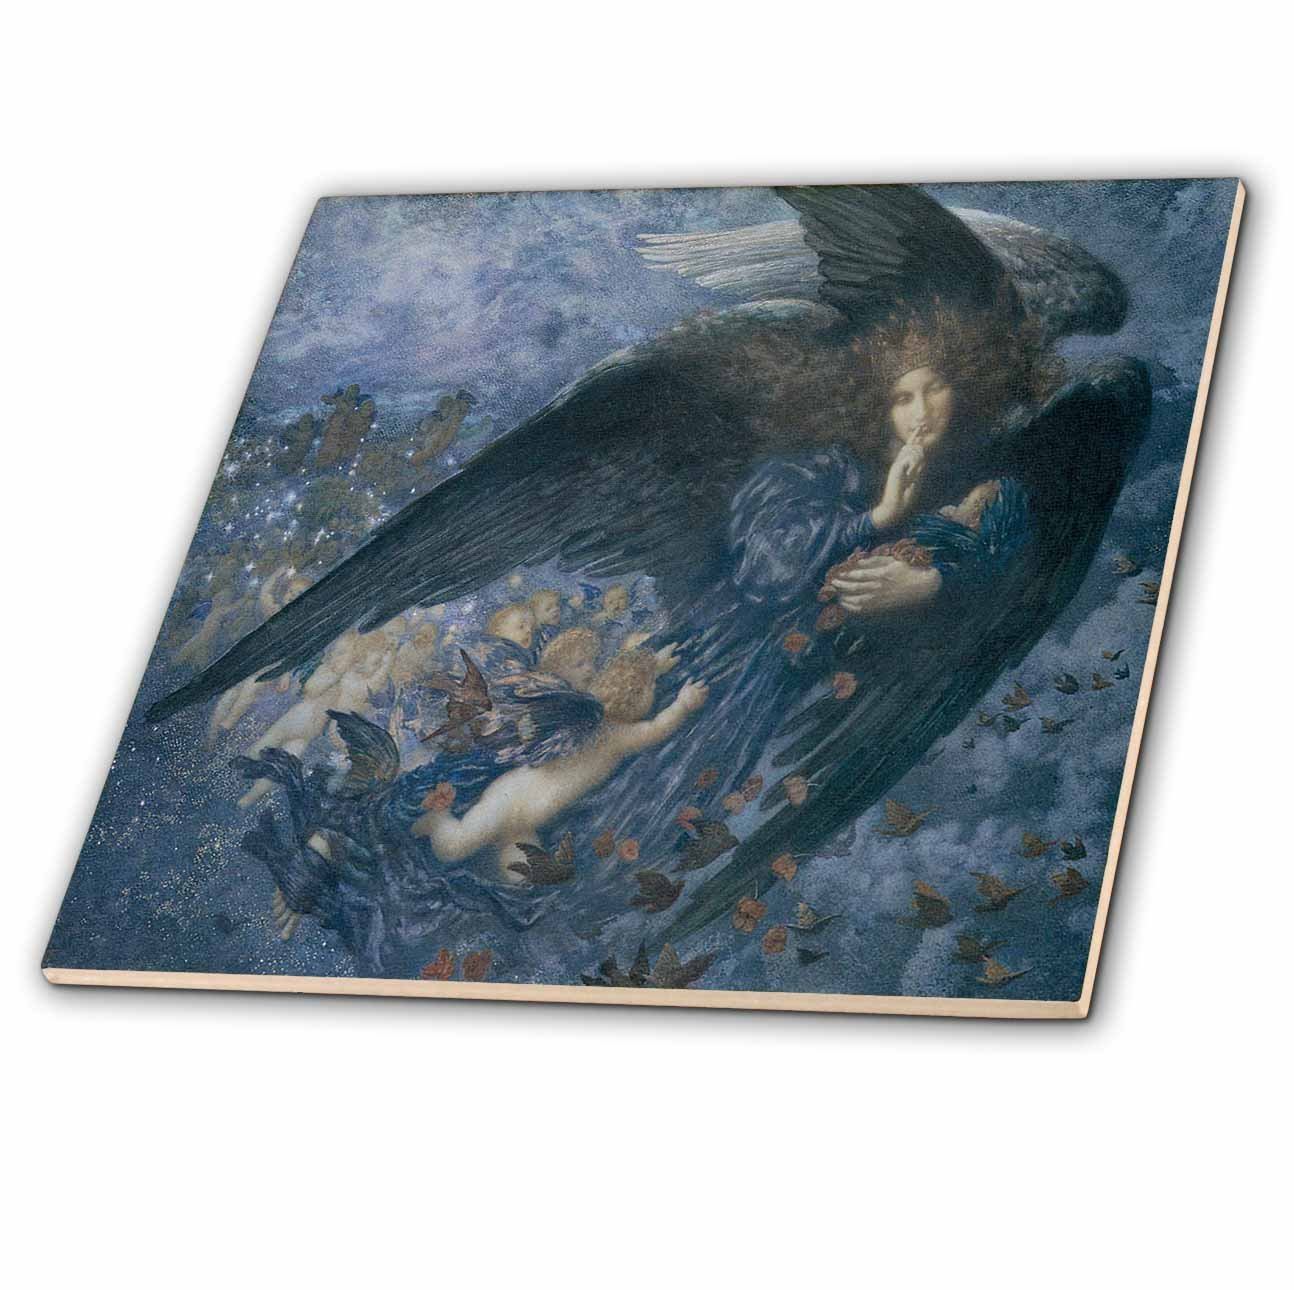 3dRose ct_127264_2 Night with Her Train of Stars by Edward Robert Hughes Ceramic Tile, 6-Inch